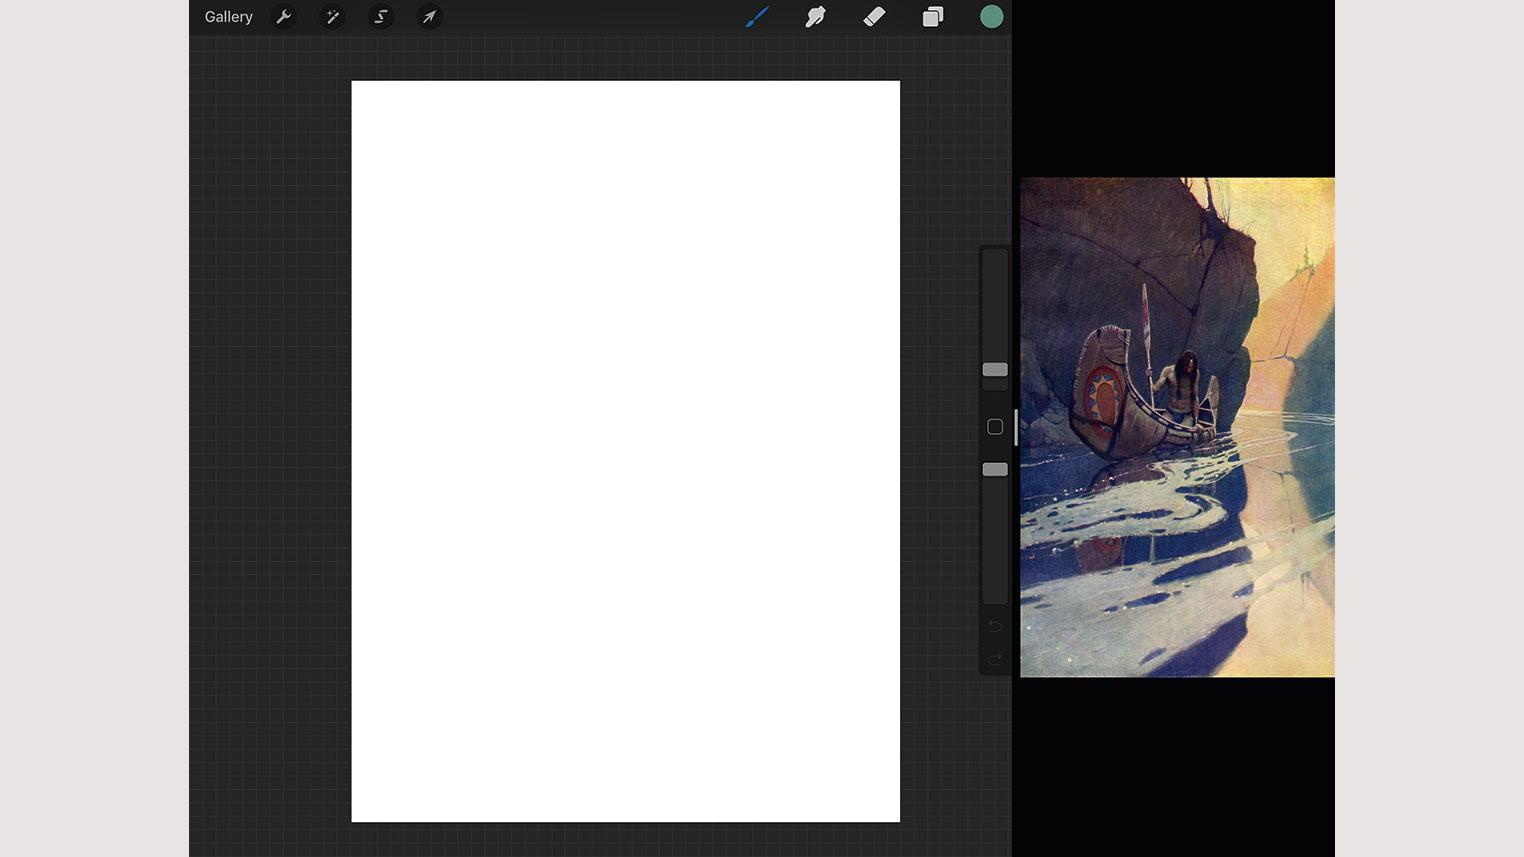 Painting in Procreate with split screen function on